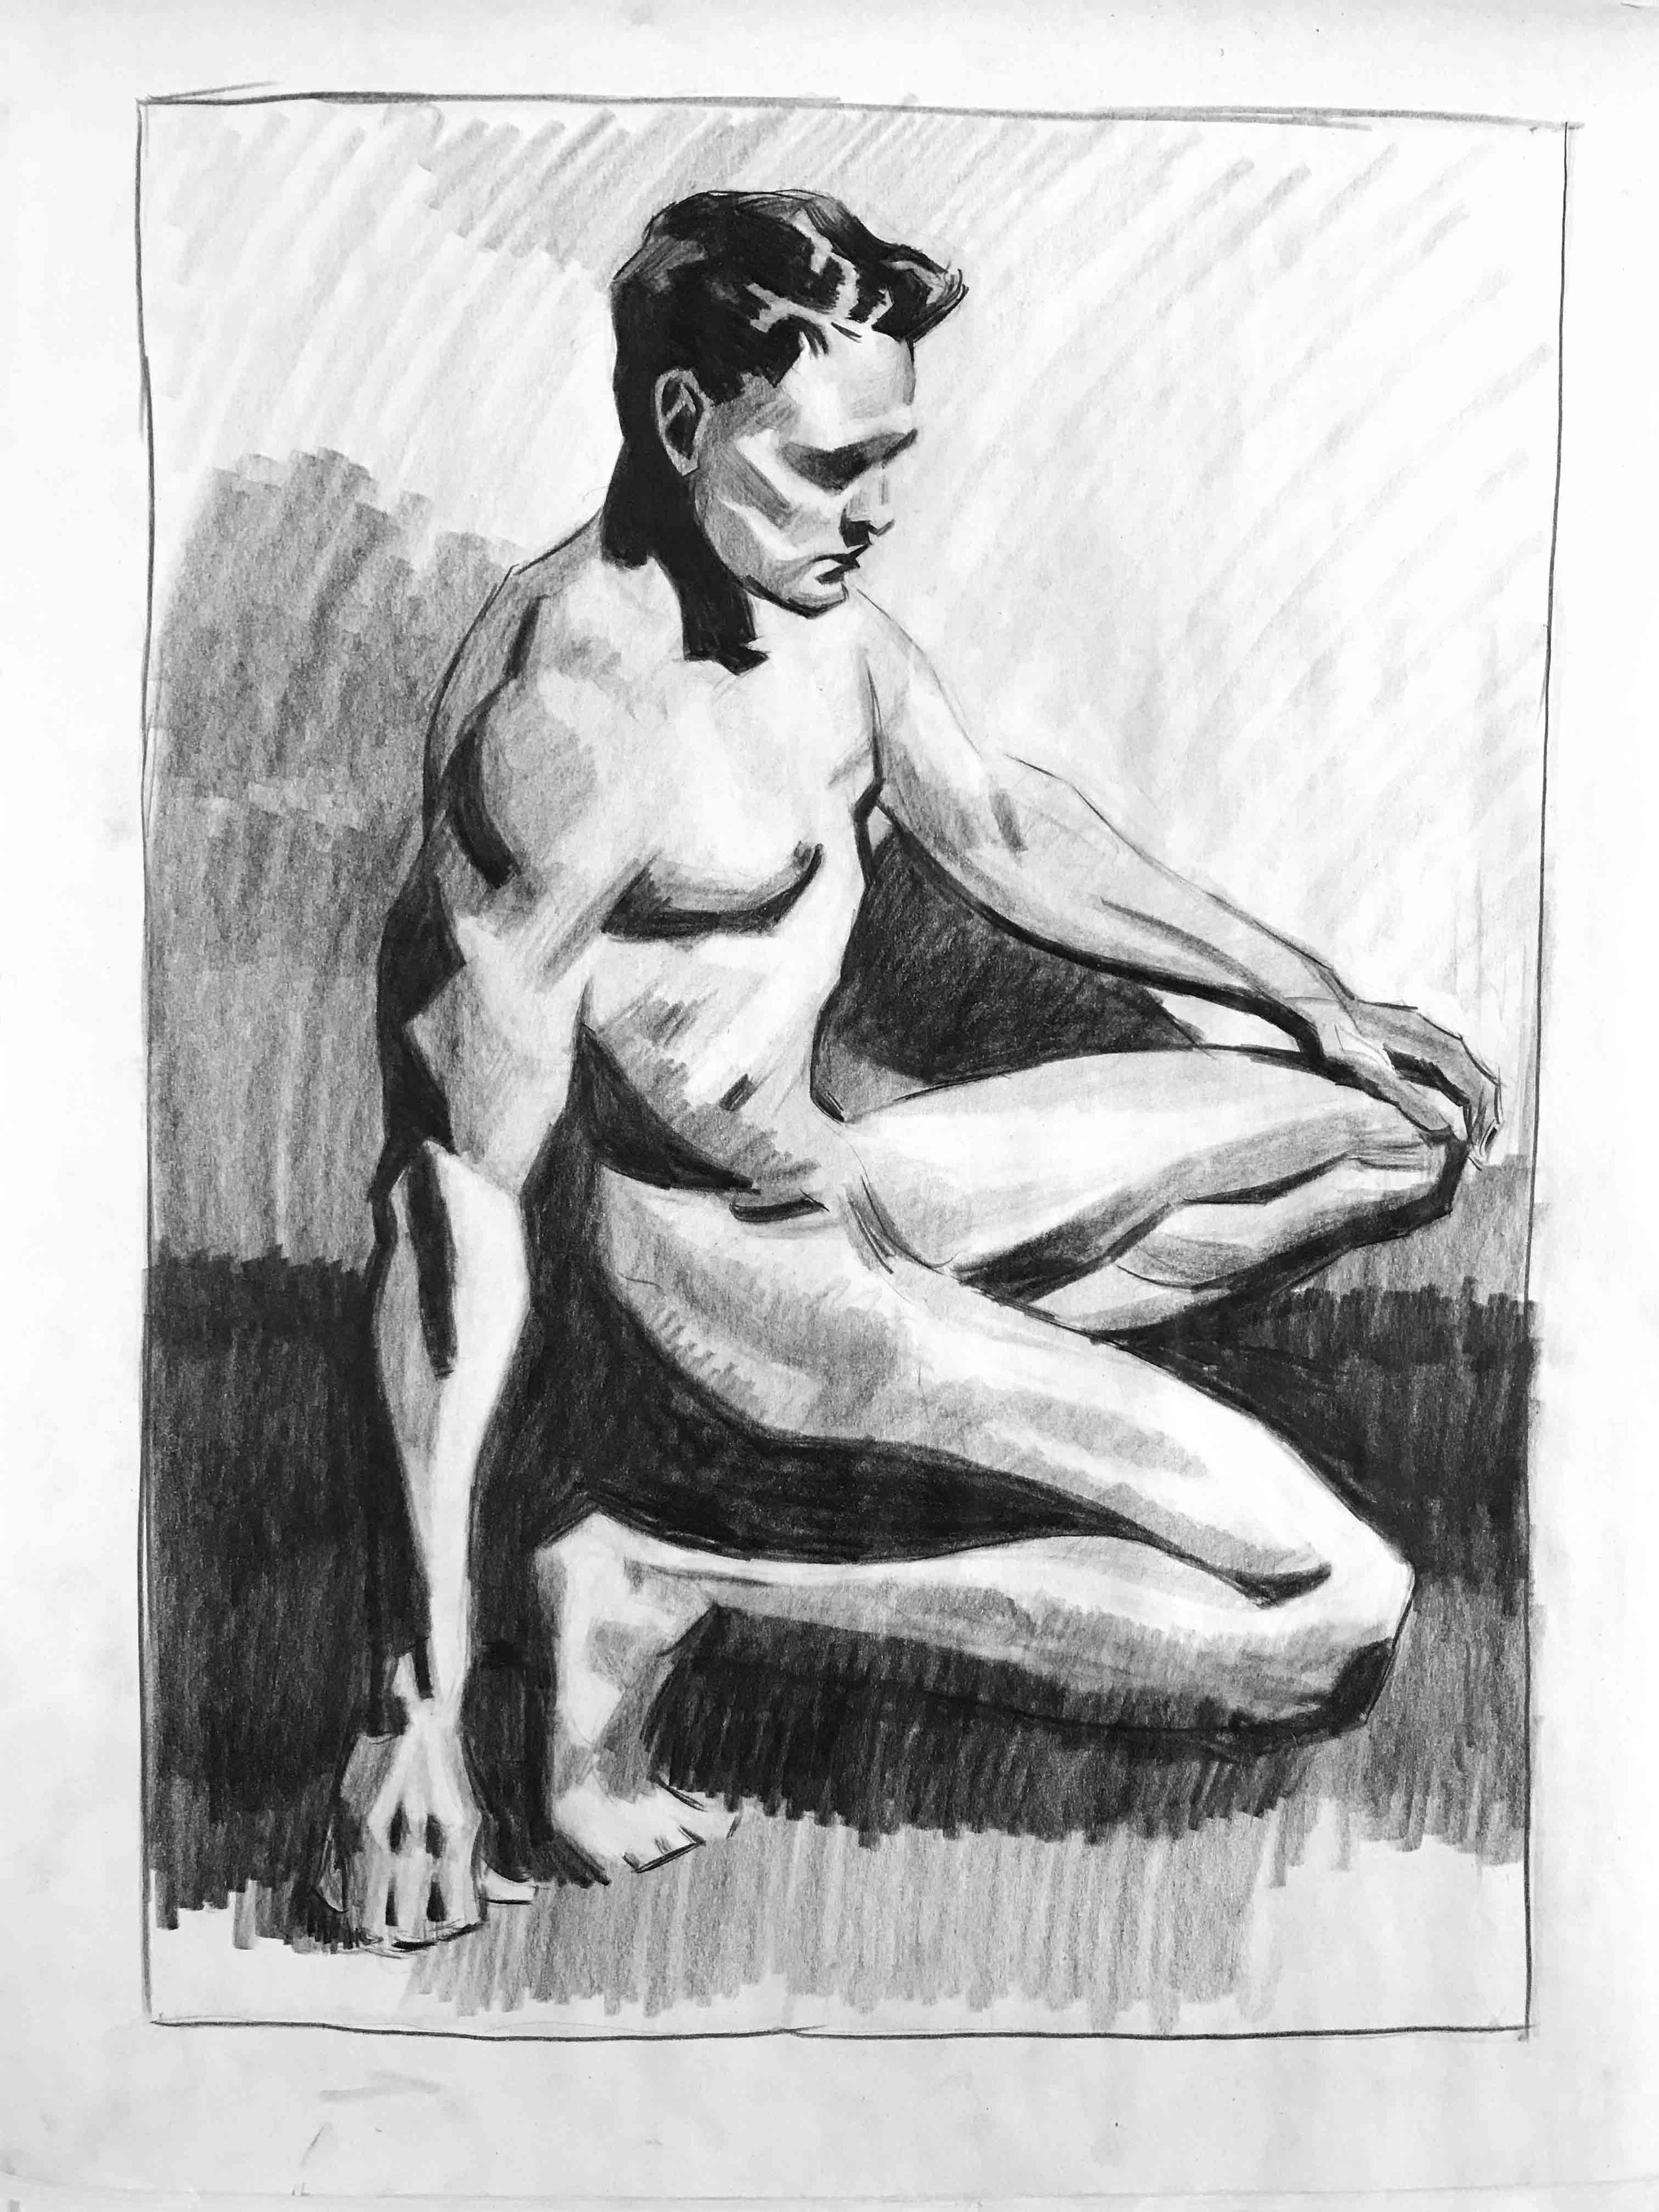 3 hrs mastercopy, after Andrew Loomis